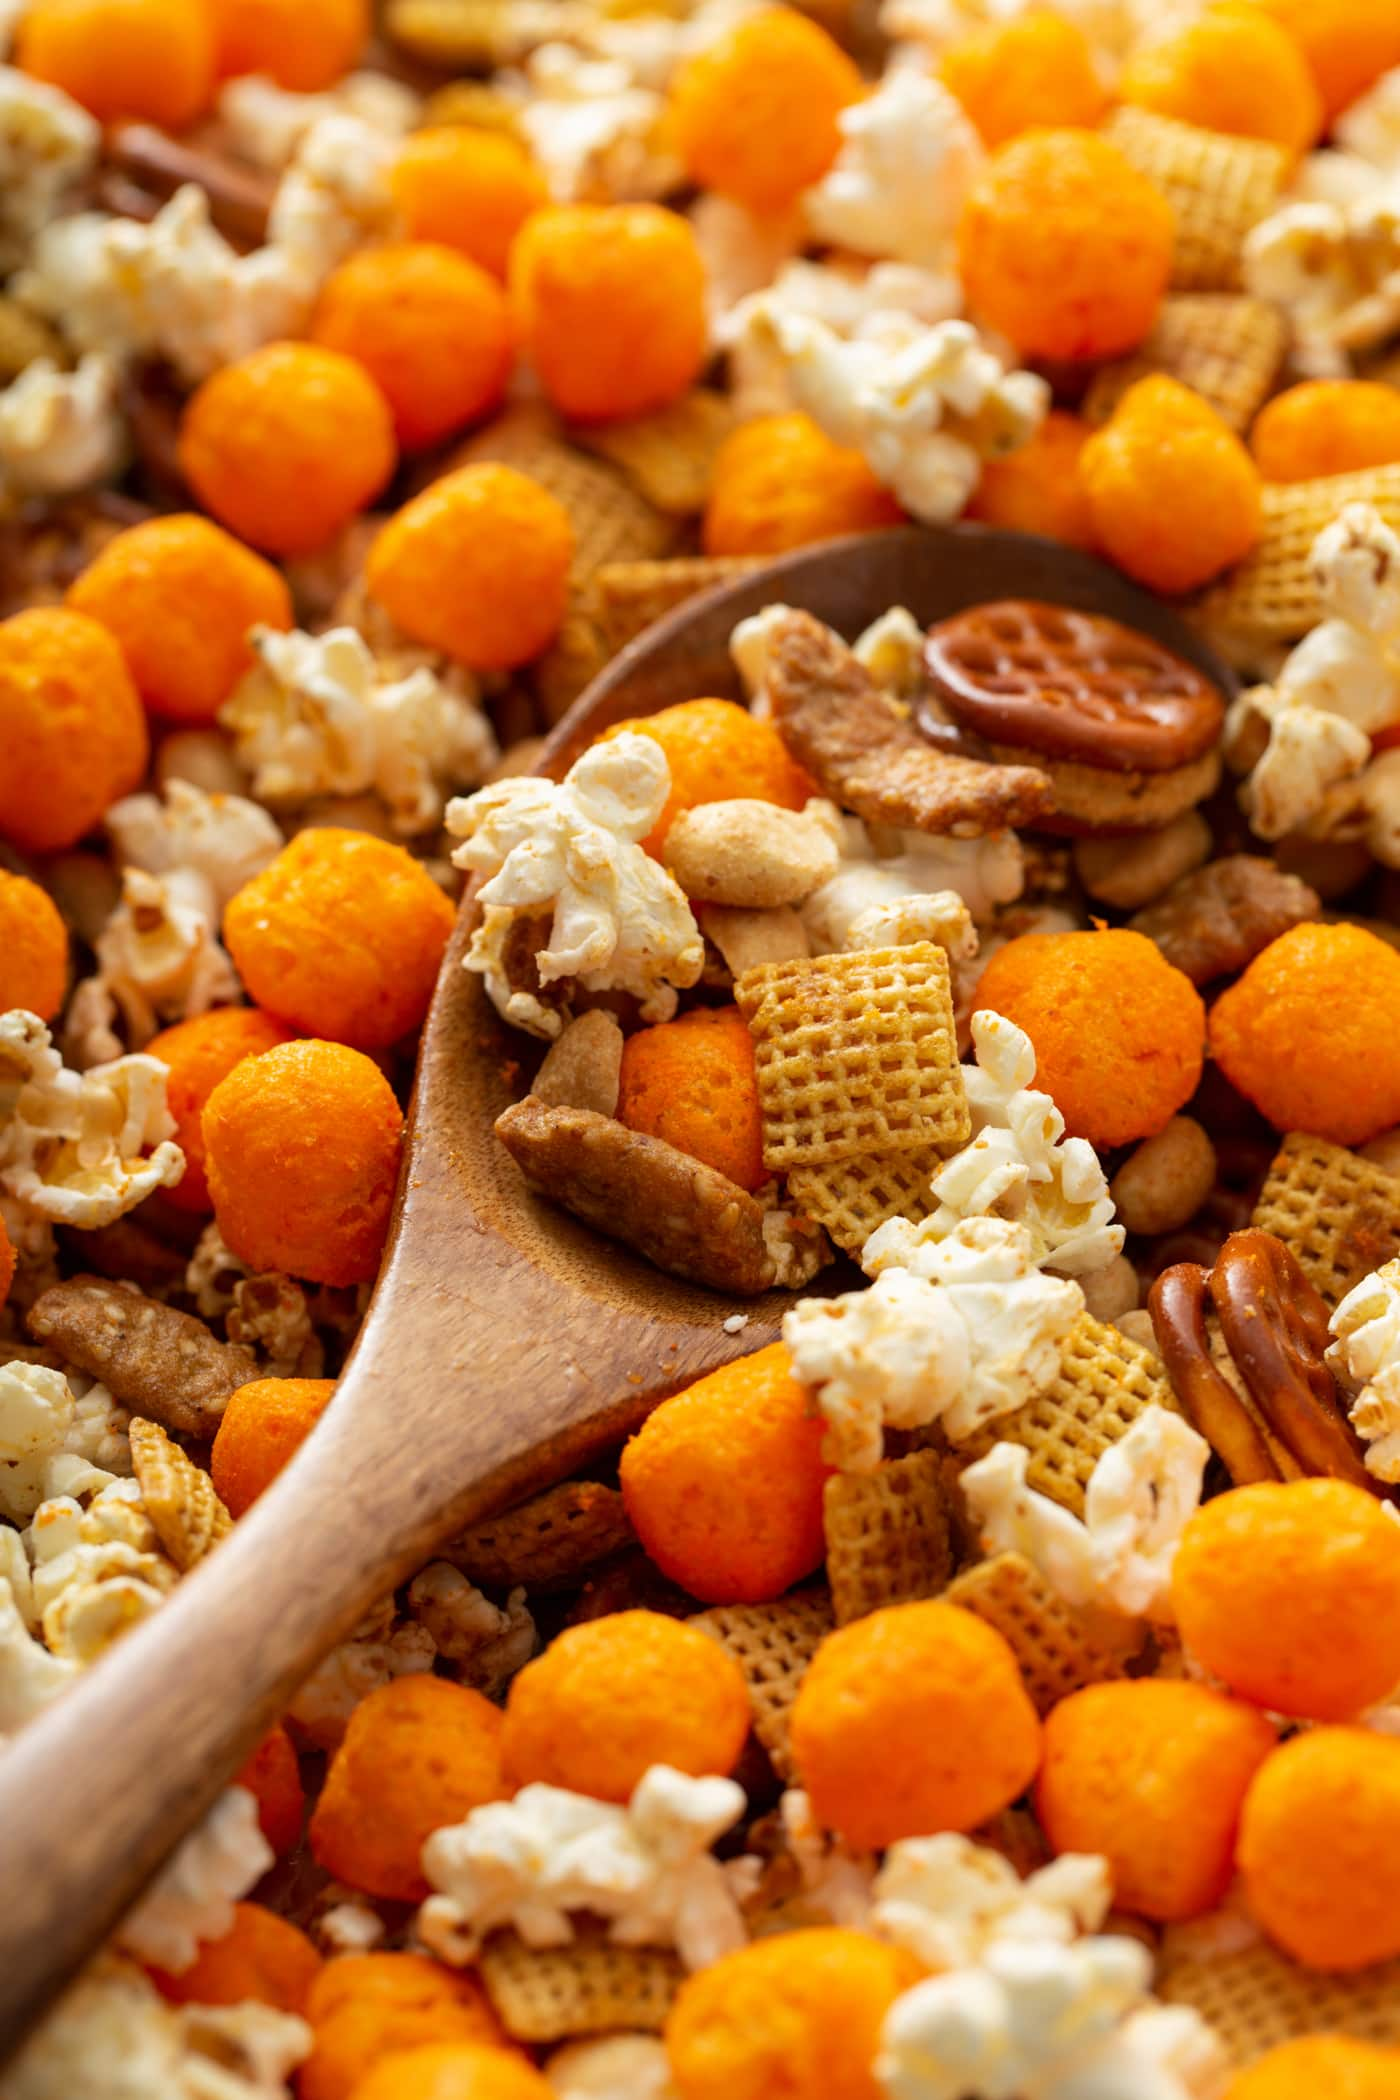 A wooden spoon dipping a big scoop of March madness snack mix. There is popcorn, cheese balls, chex and pretzels in the mix.